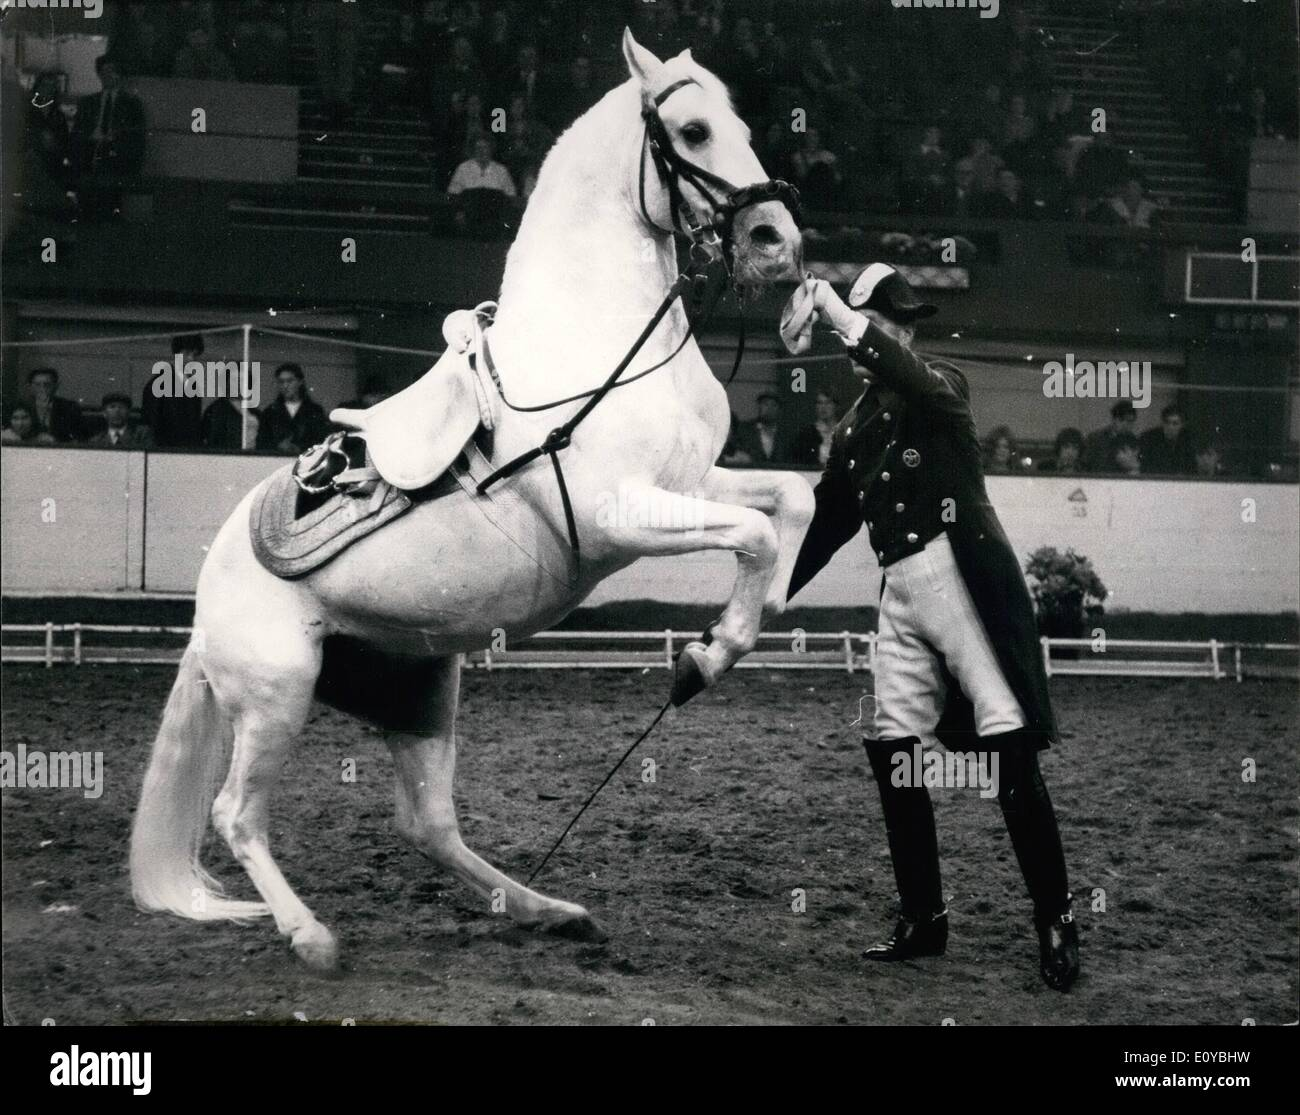 Oct. 10, 1969 - The Spanish riding school of Vienna give display at the Empire pool-Wembley: The Spanish Riding School of Vienna will be giving a complete performance of the Classical Art of Riding as practised at the Imperial Court of Vienna for 400 years, at the Empire Pool, Wembley, next week. Today the Lipizzaner Stallions of the famous school were rehearsing at Wembley for next week's display: Photo shows one of the famous Lipizzaner horses is seen doing the Levade Squatting deep on its hindquarters, the horse lifts his fore feet off the ground and maintains this position for a length of - Stock Image